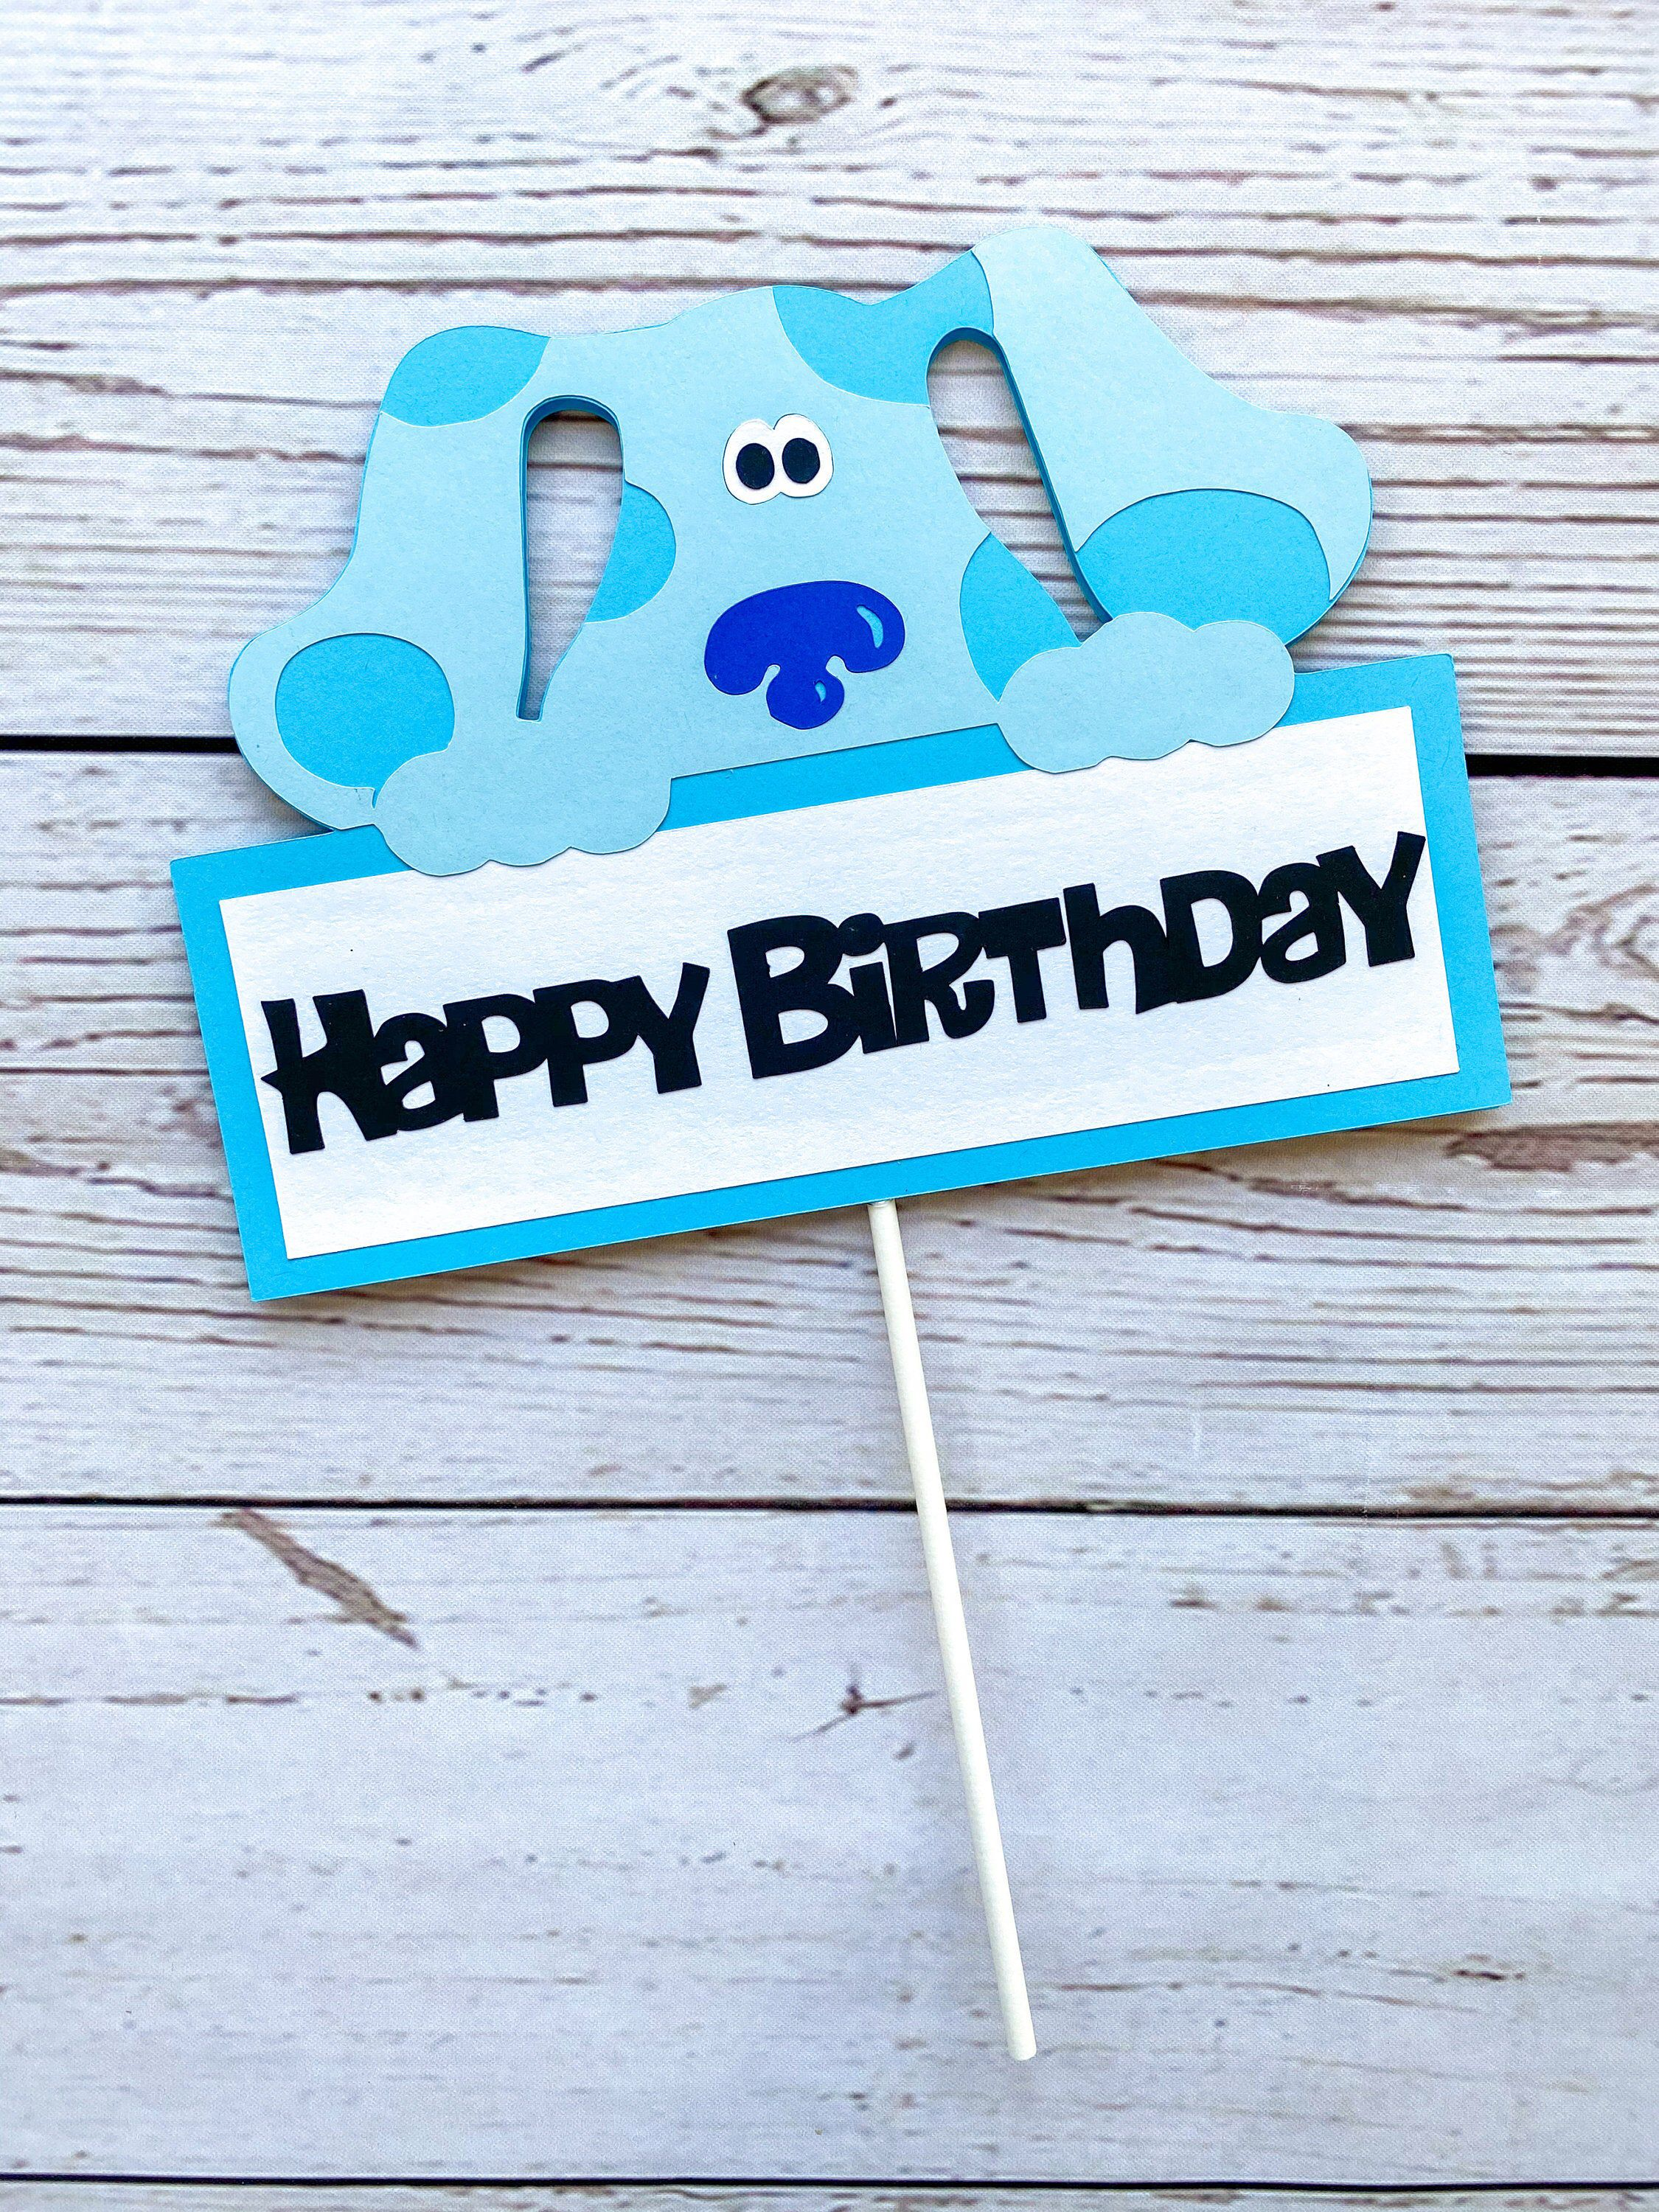 Blue's Clues Birthday : blue's, clues, birthday, Blues, Clues, Topper, Birthday, Party, Girl,, Themes,